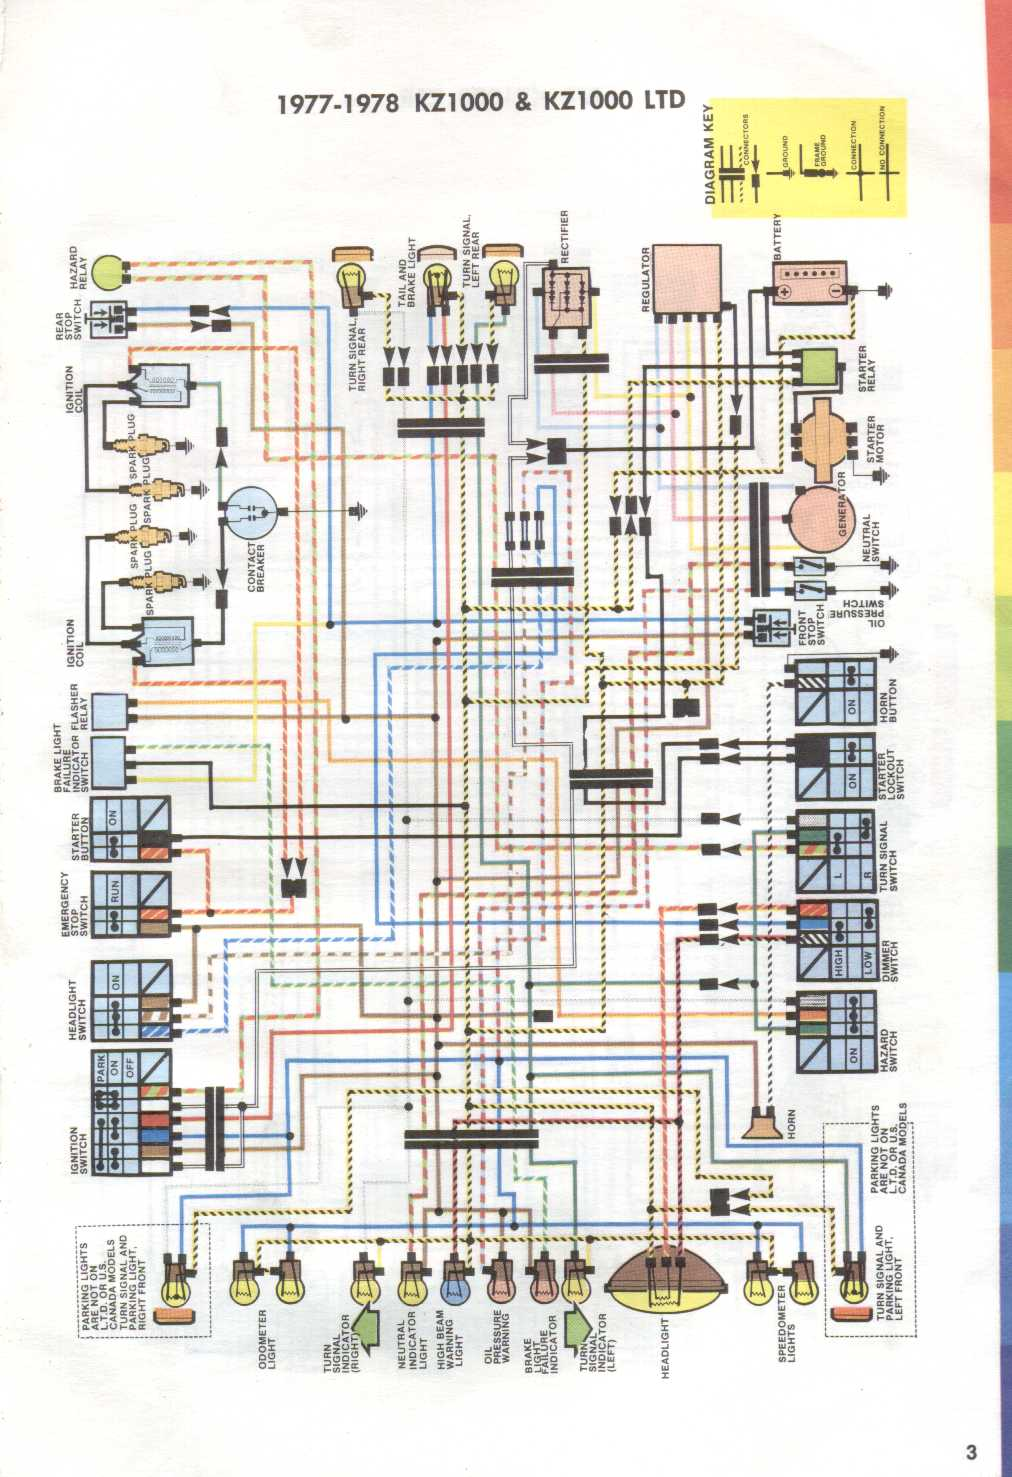 Kawasaki Ignition Switch Wiring Diagram - Wiring Diagrams List on